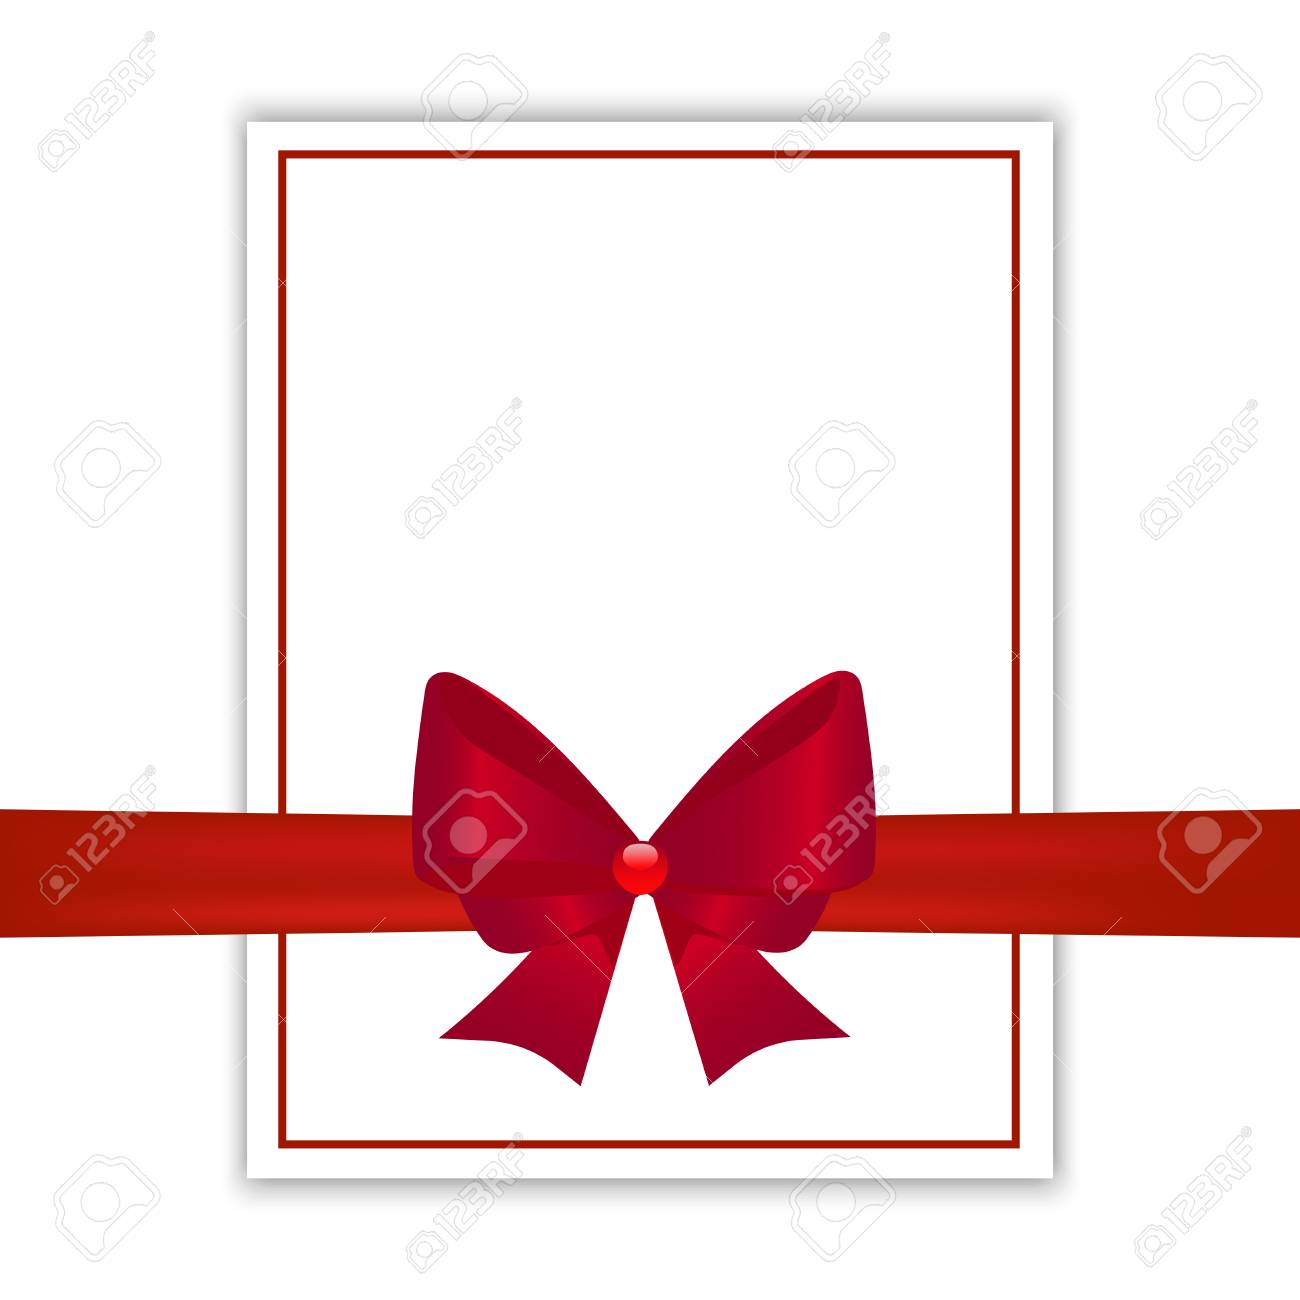 blank greeting card with red bow invitation flyer or brochure rh 123rf com